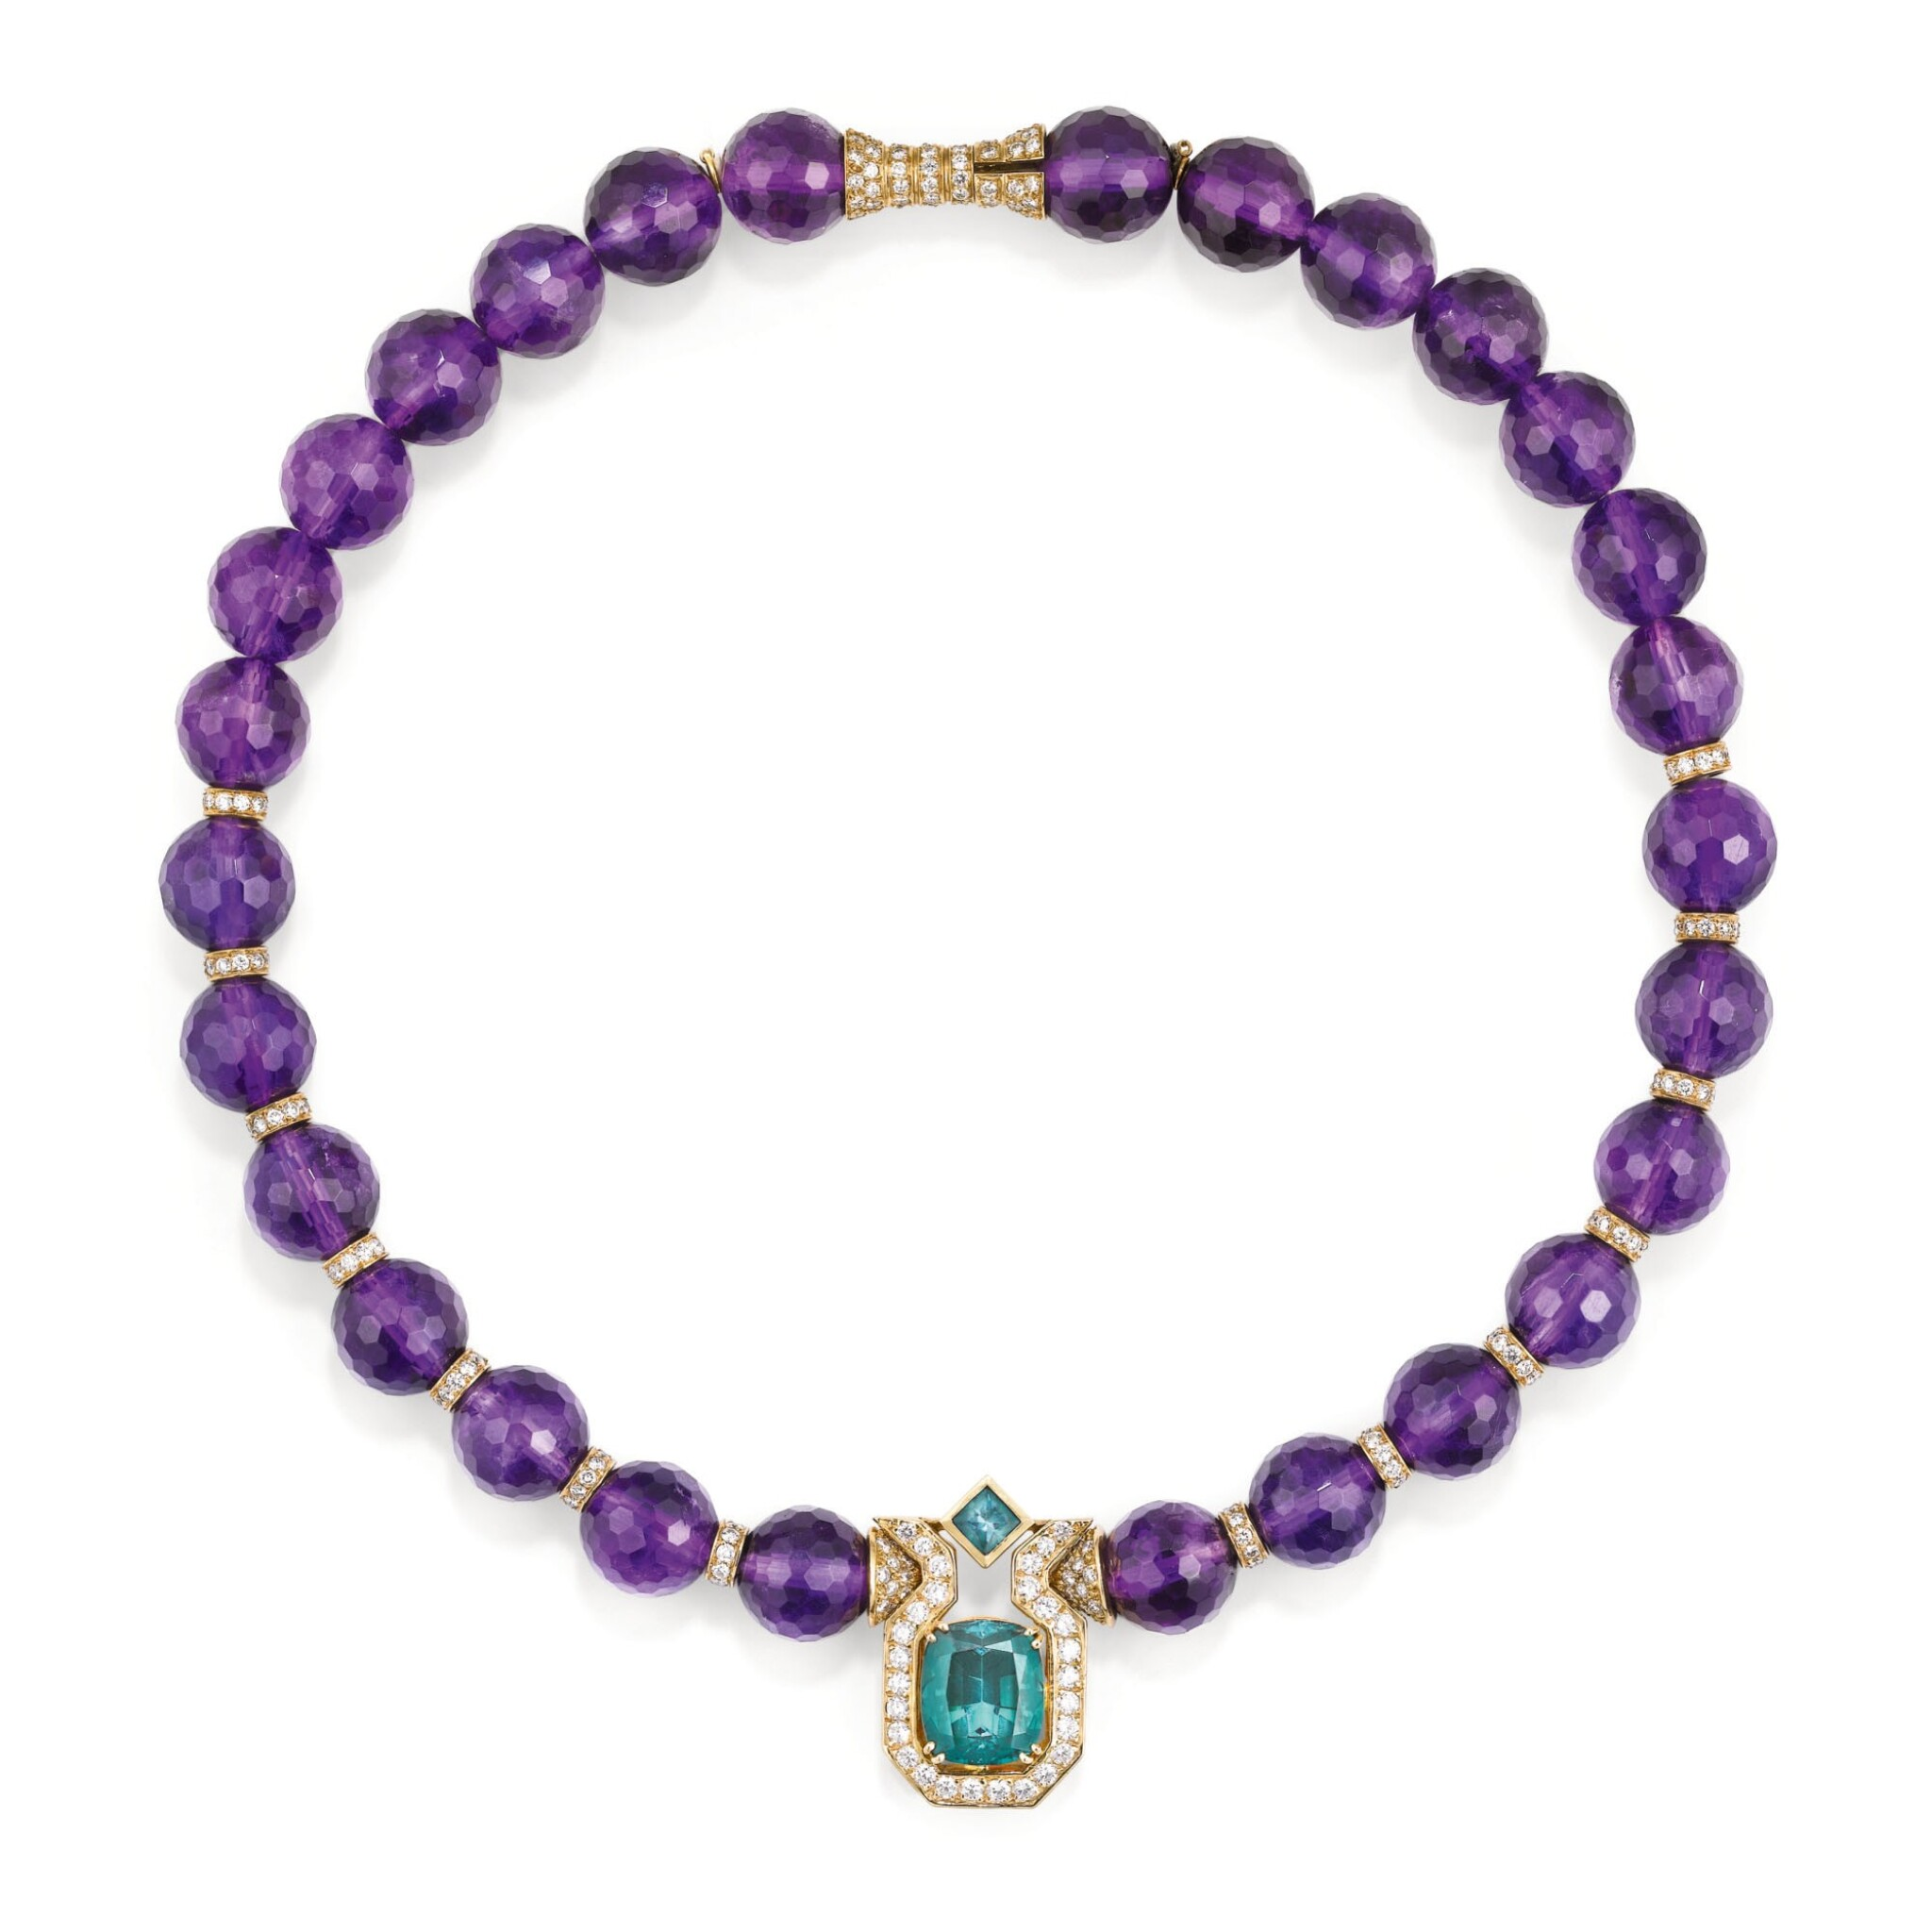 COLLIER AMETHYSTES, TOURMALINES ET DIAMANTS, MELLERIO, 1994 | AMETHYST, TOURMALINE AND DIAMOND NECKLACE, MELLERIO, 1994